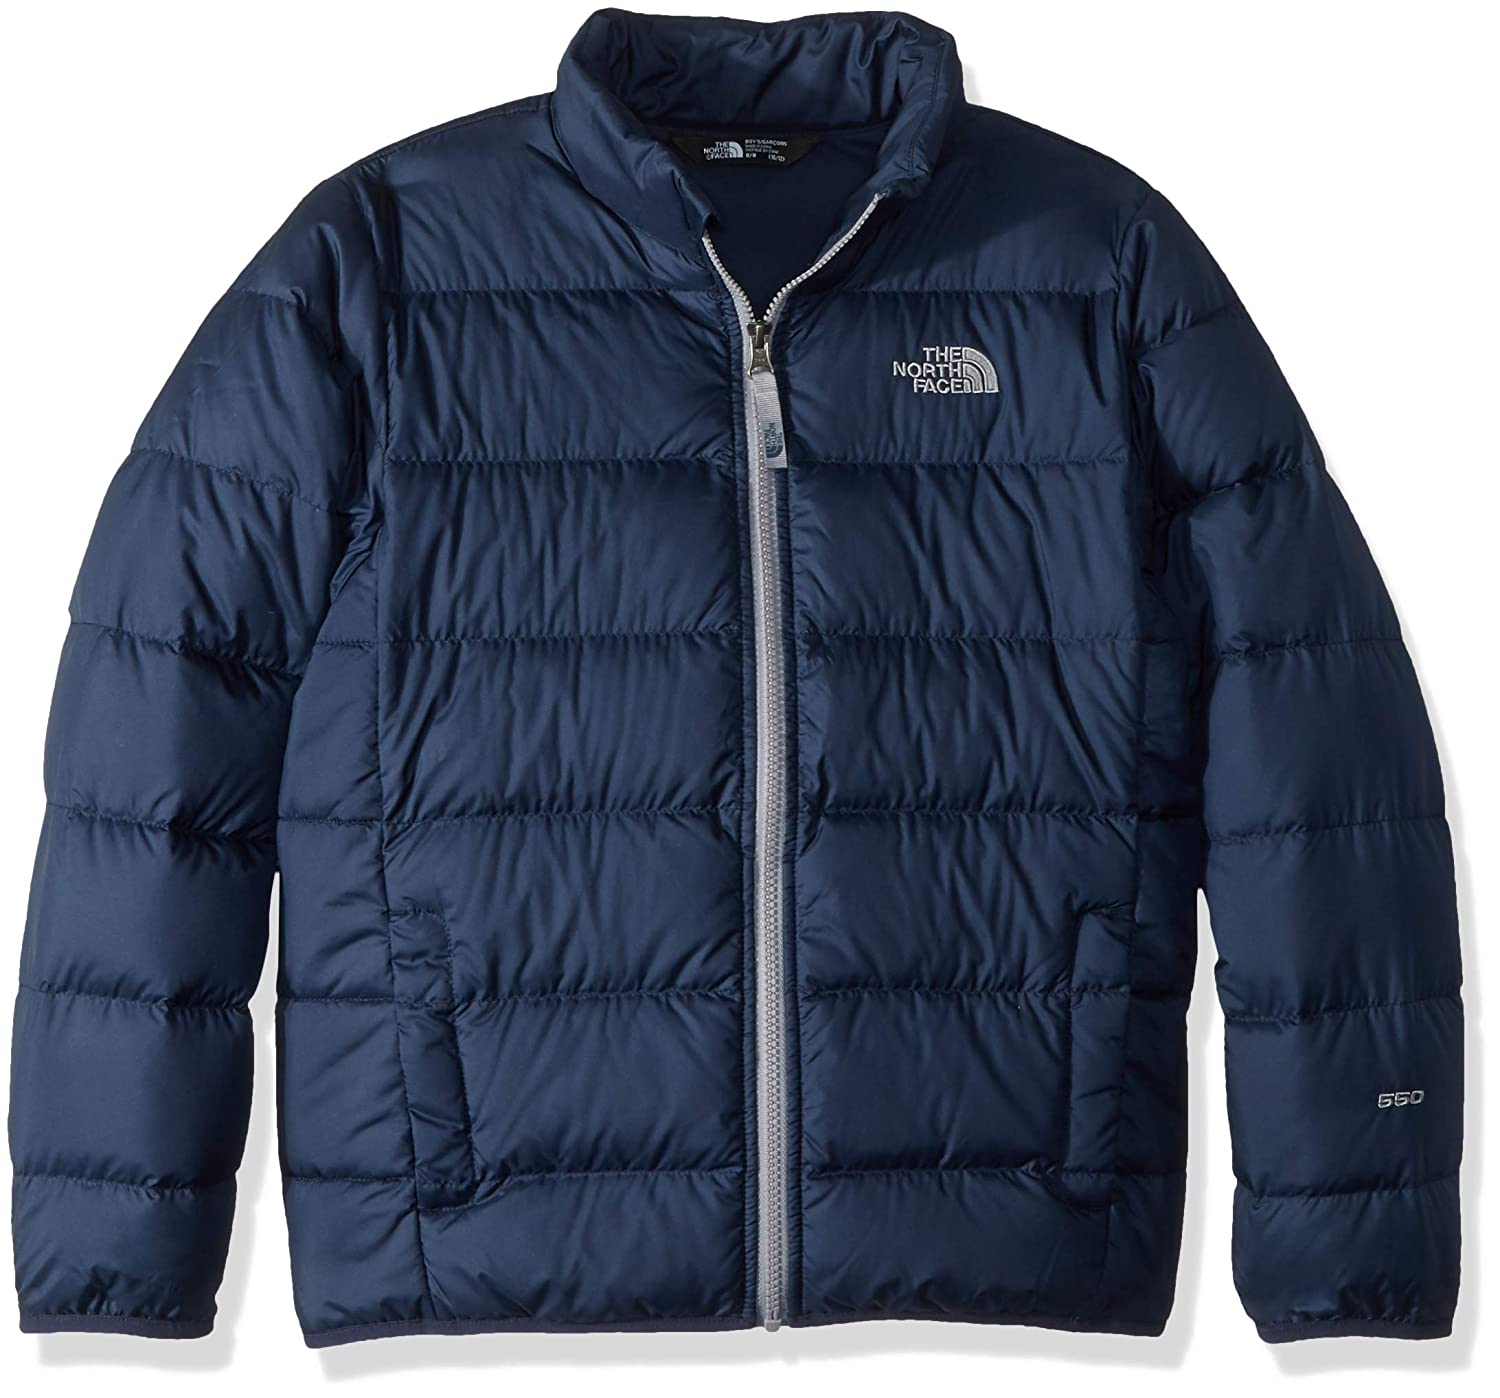 The North Face T0chq6, Giacca Termica Quest Bambino